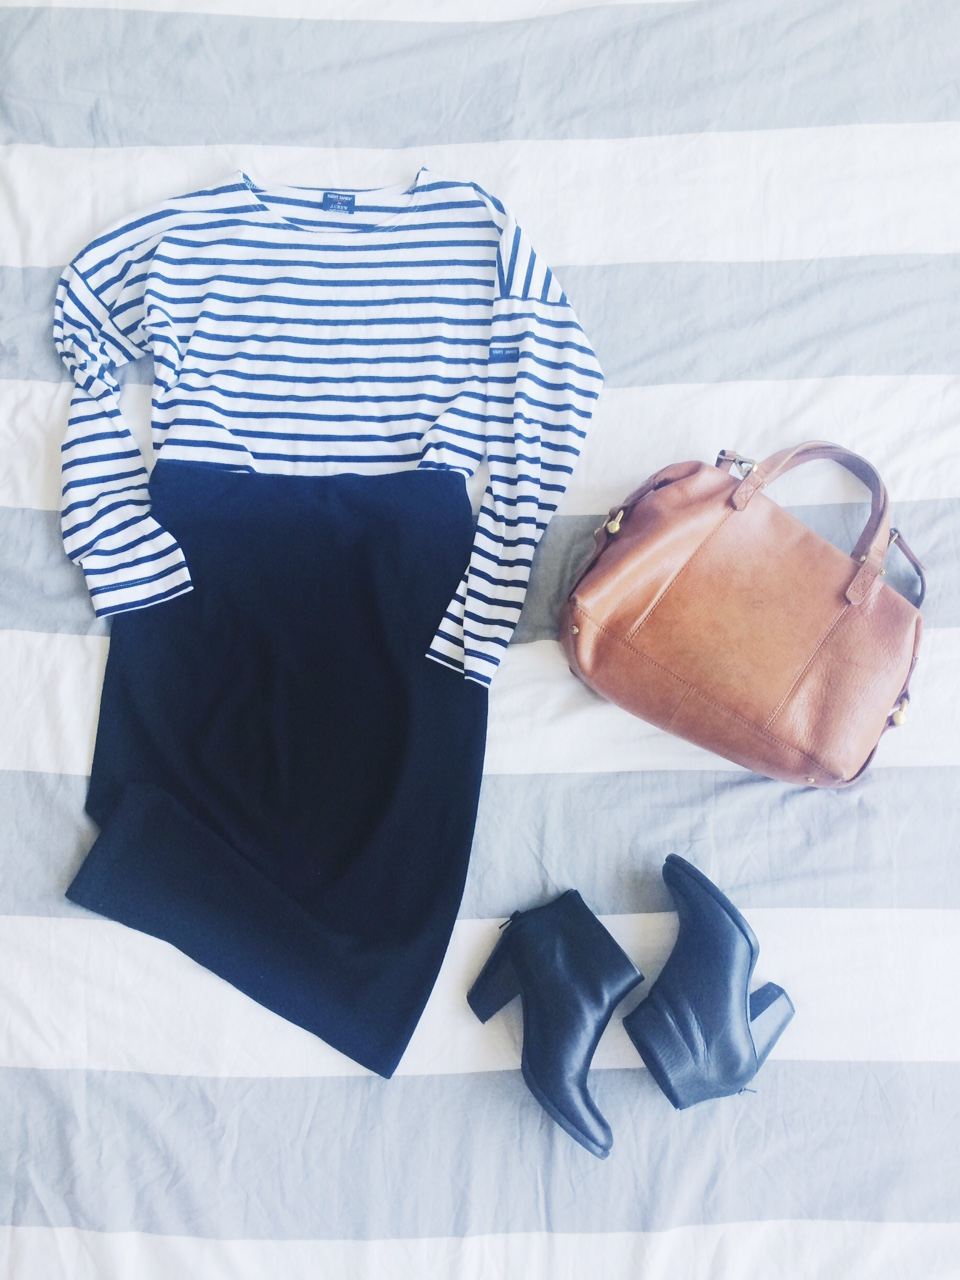 Shirt: Jcrew, Skirt: Asos, Bag: Madewell,